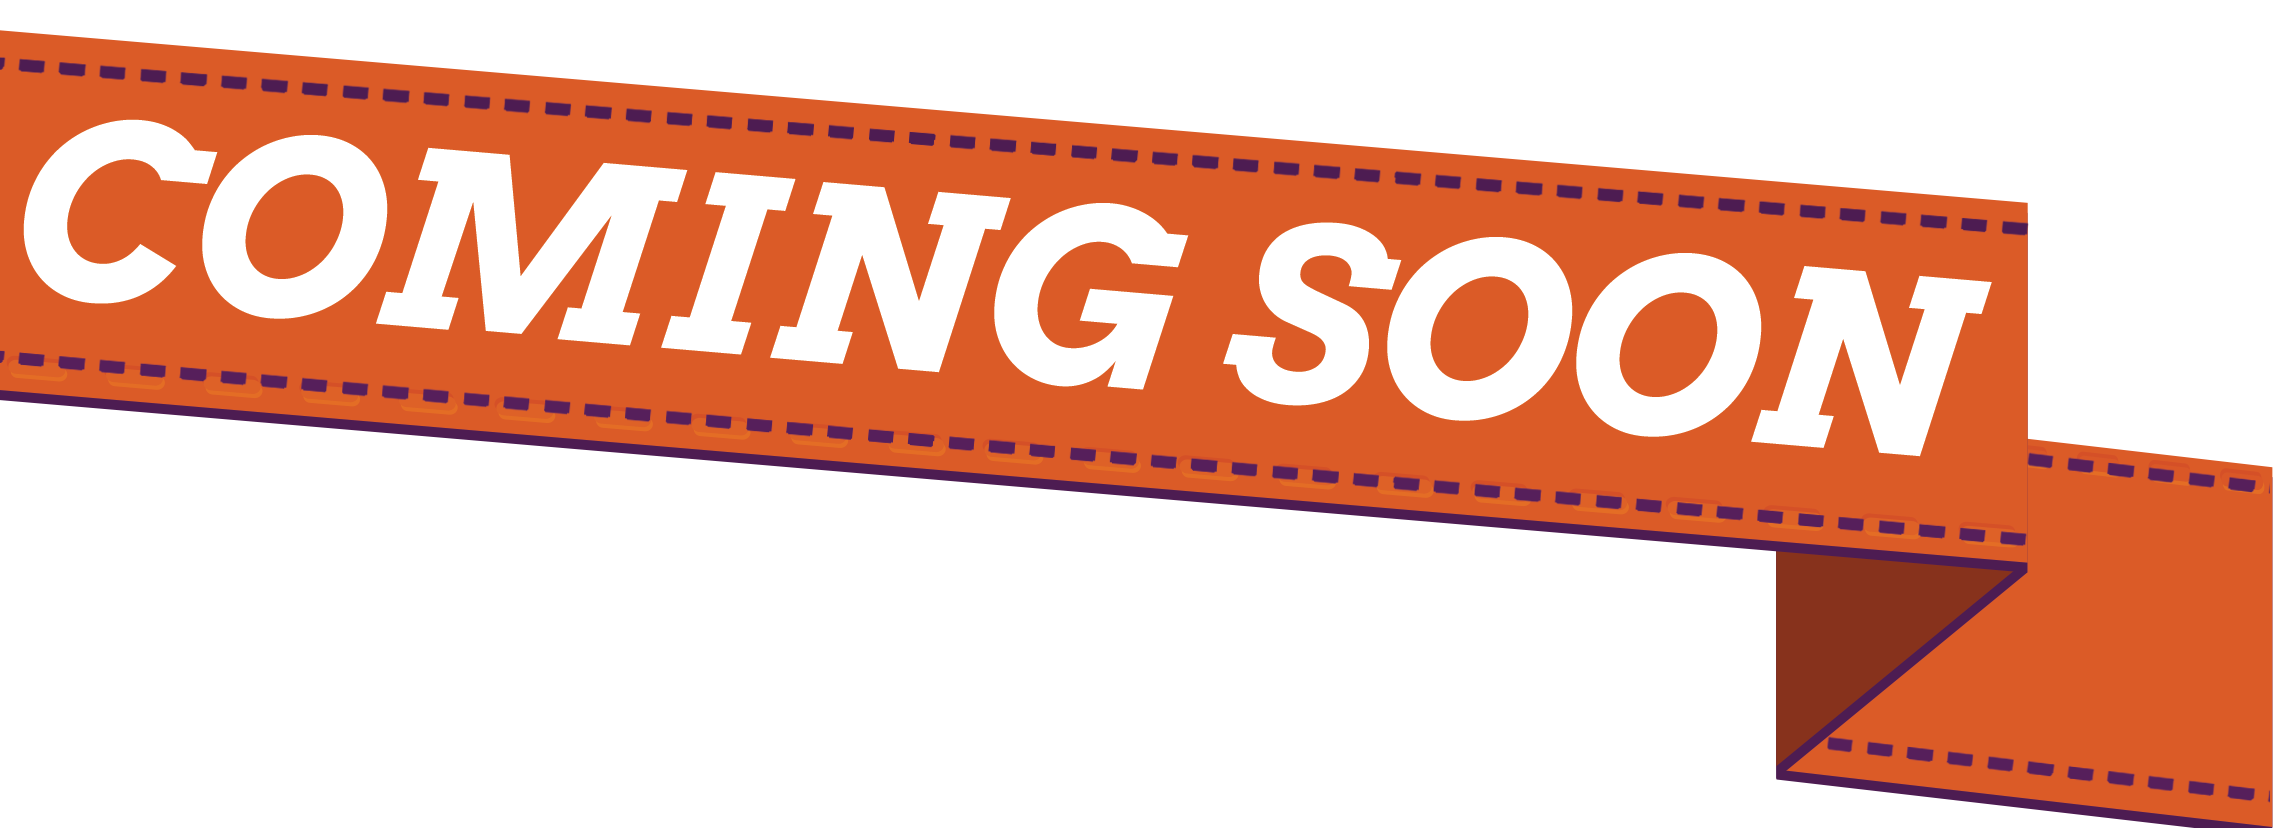 Coming soon banner png. Flyer banners beste globalaffairs